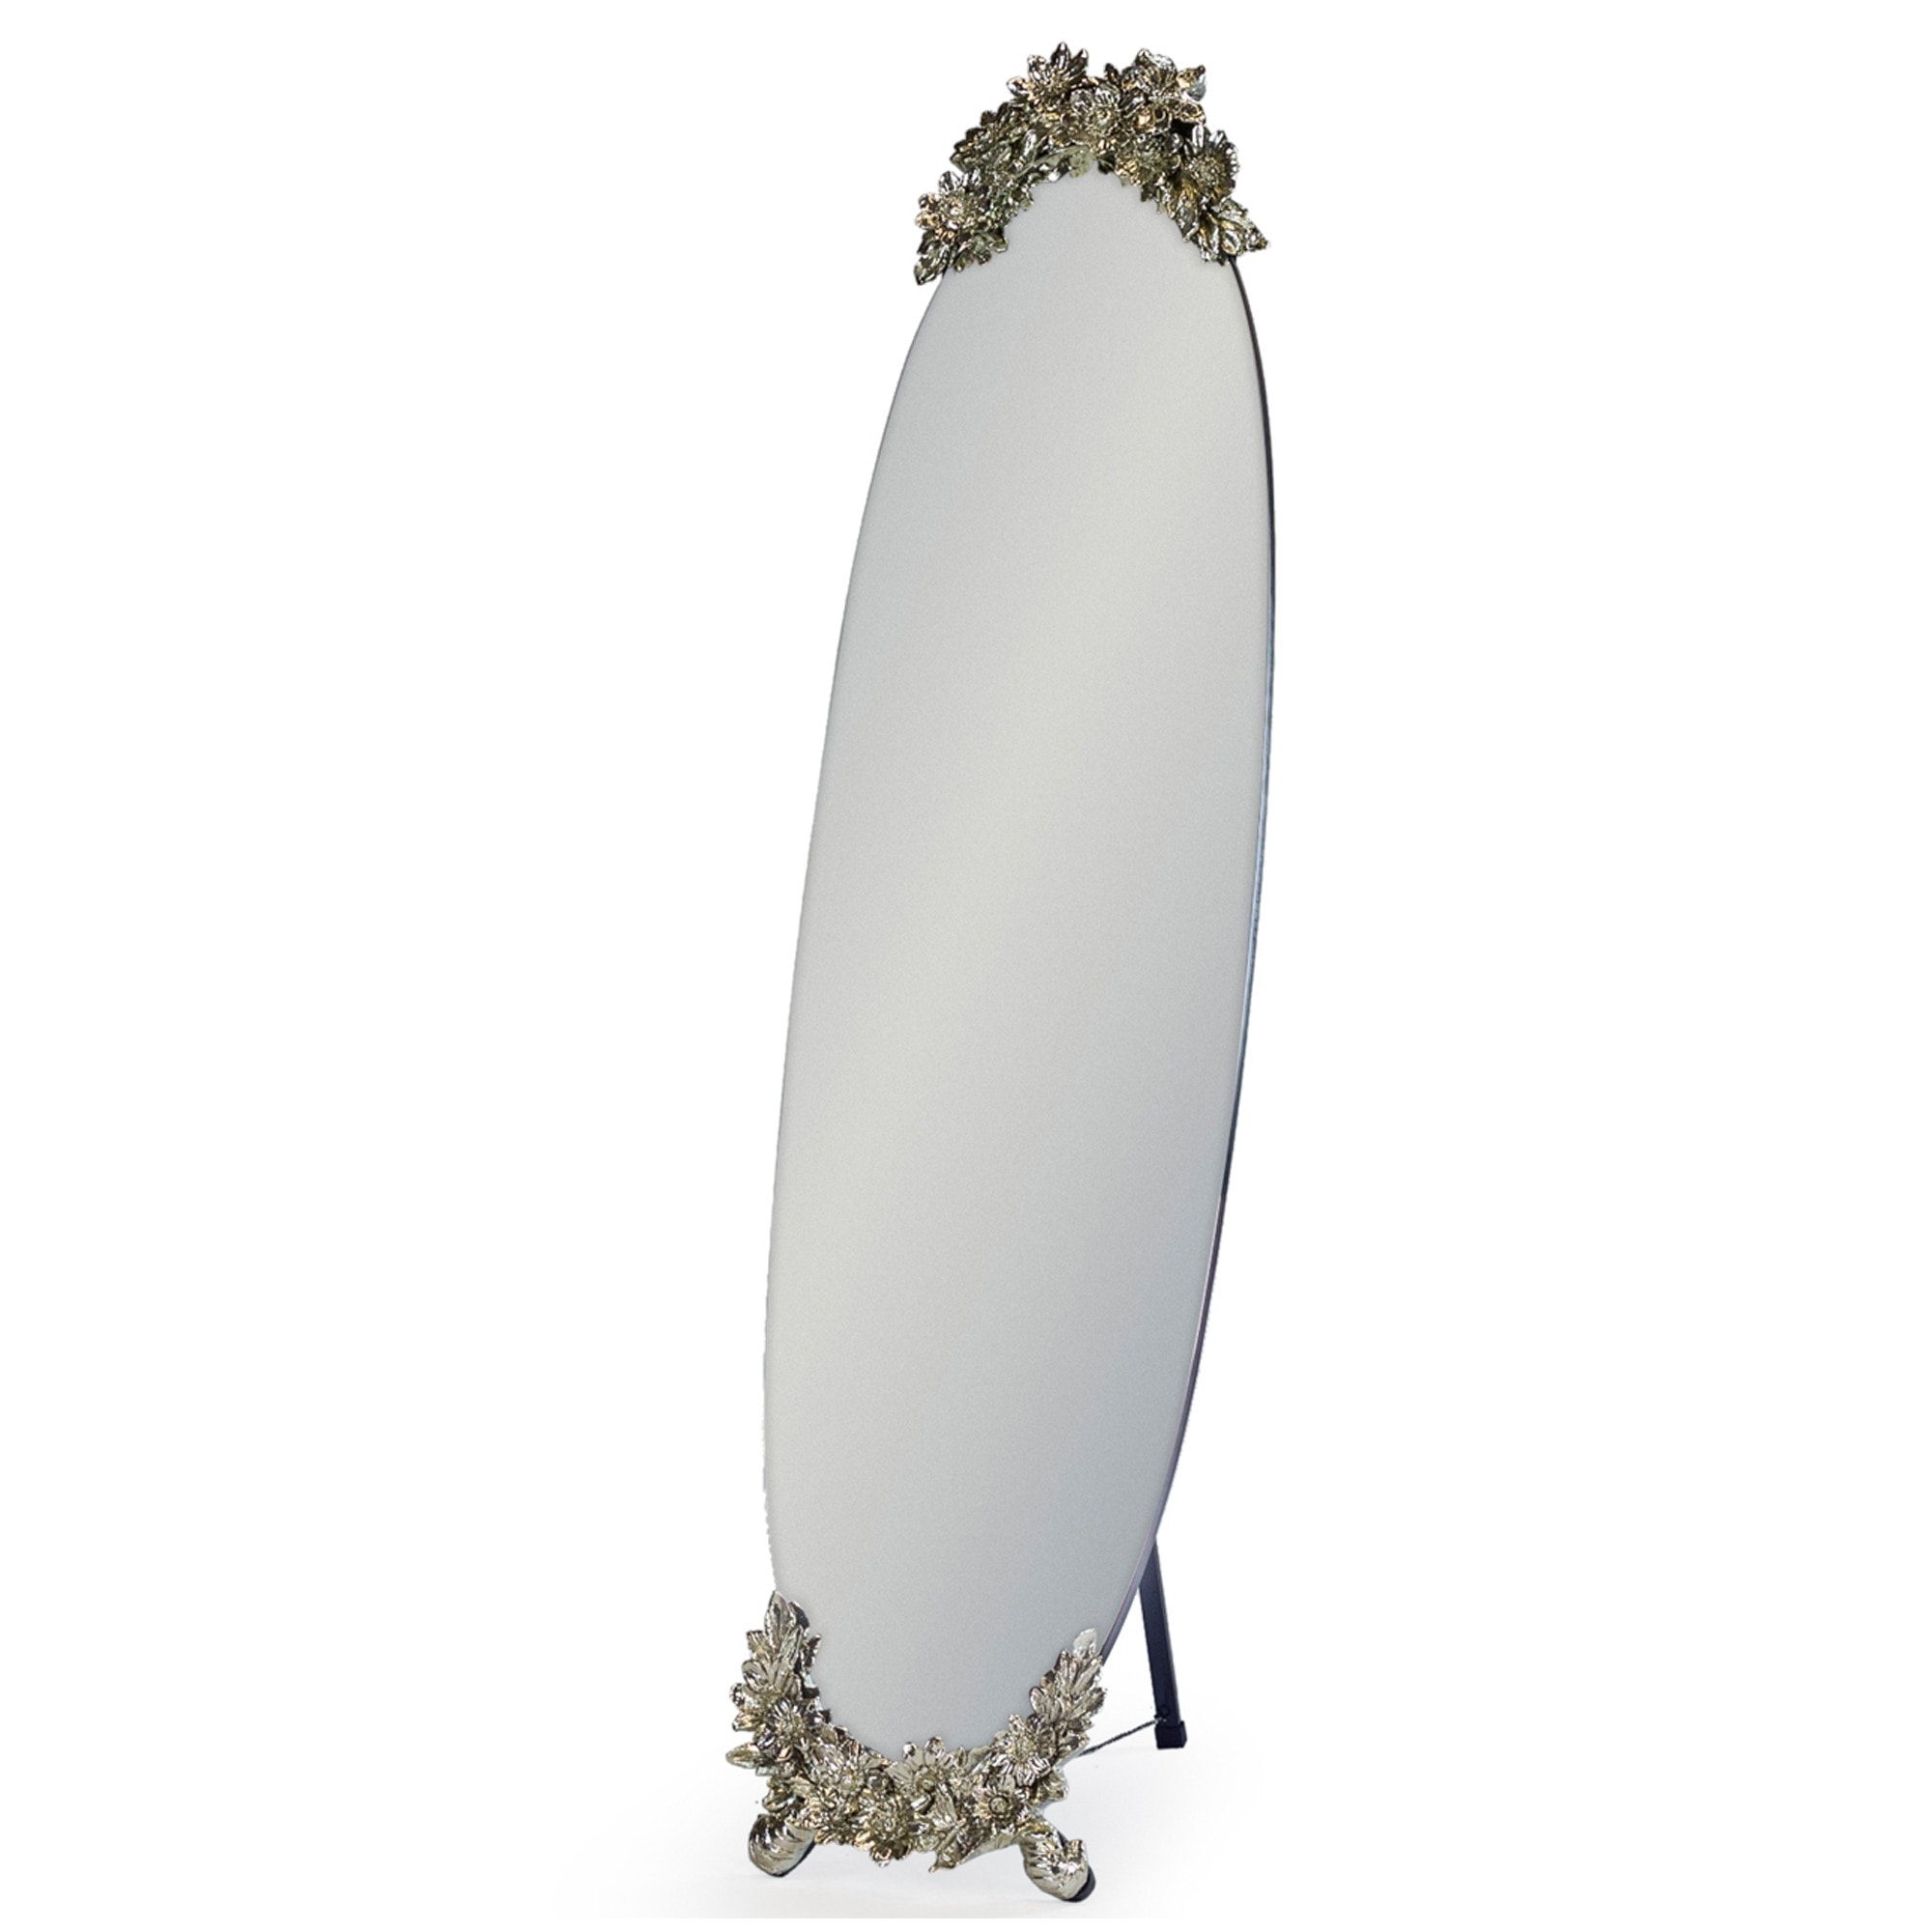 Antique French Style Oval Frameless Cheval Mirror With Butterfly Metallic Cresting Detail Shabby Chic Mirror Ornate Floor Mirror